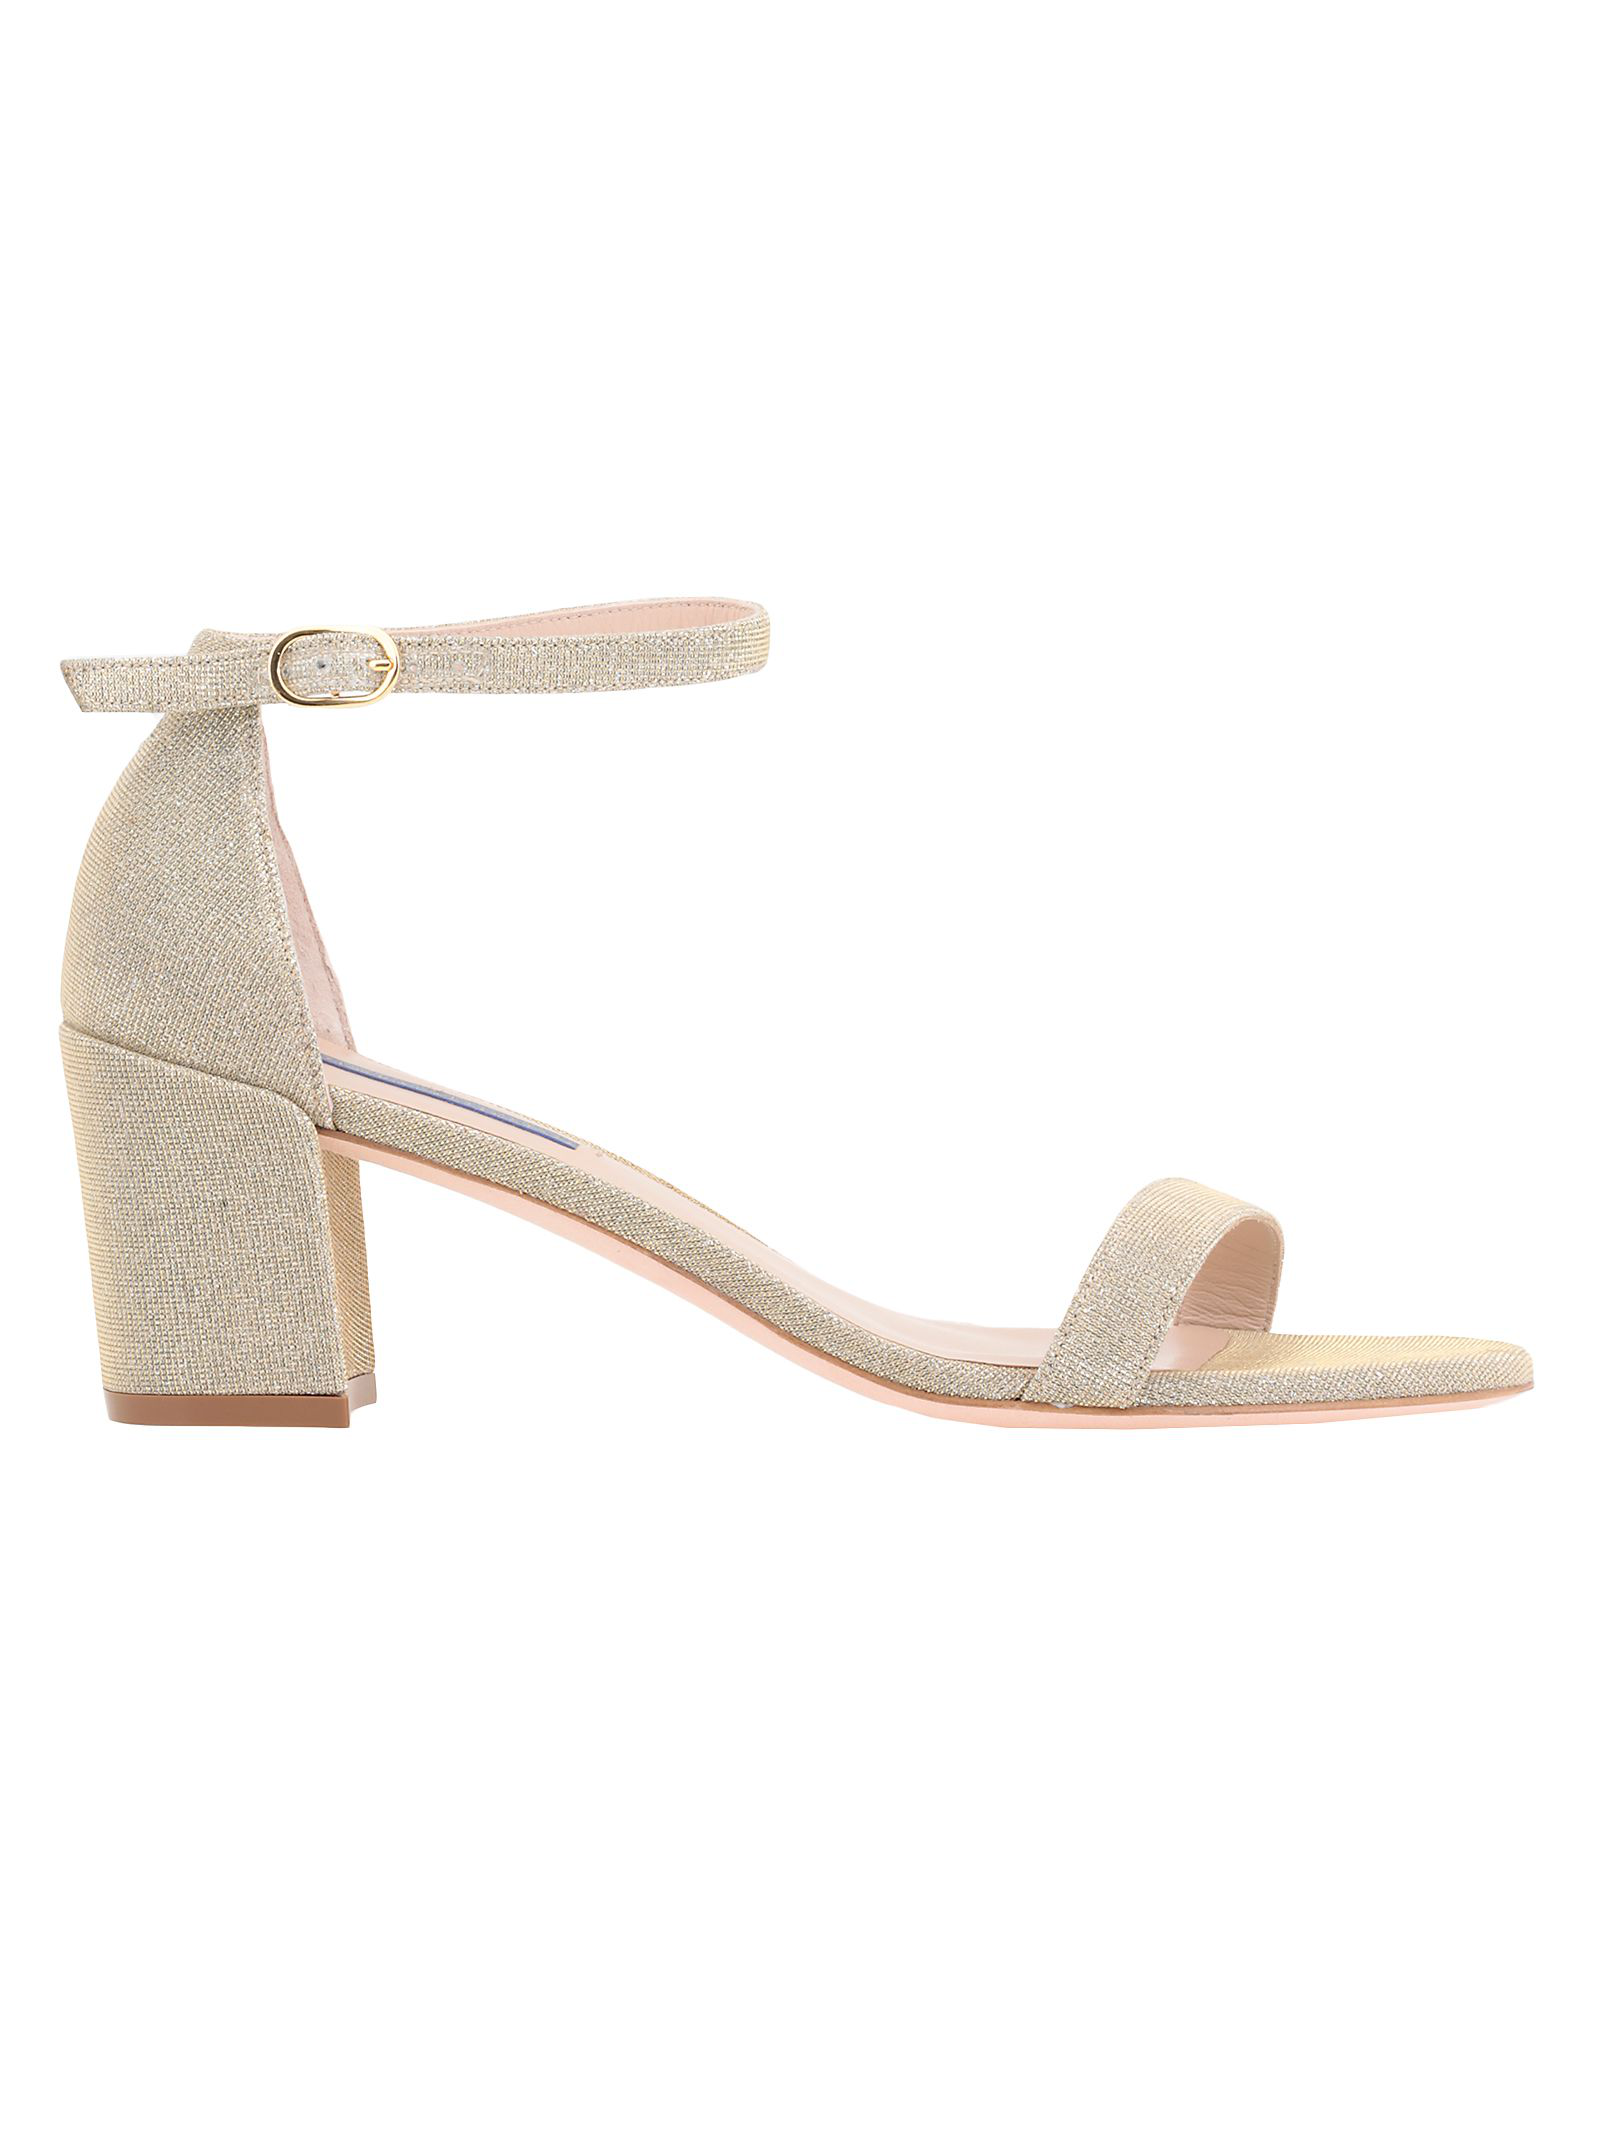 Stuart Weitzman Simple Sandal In Platino